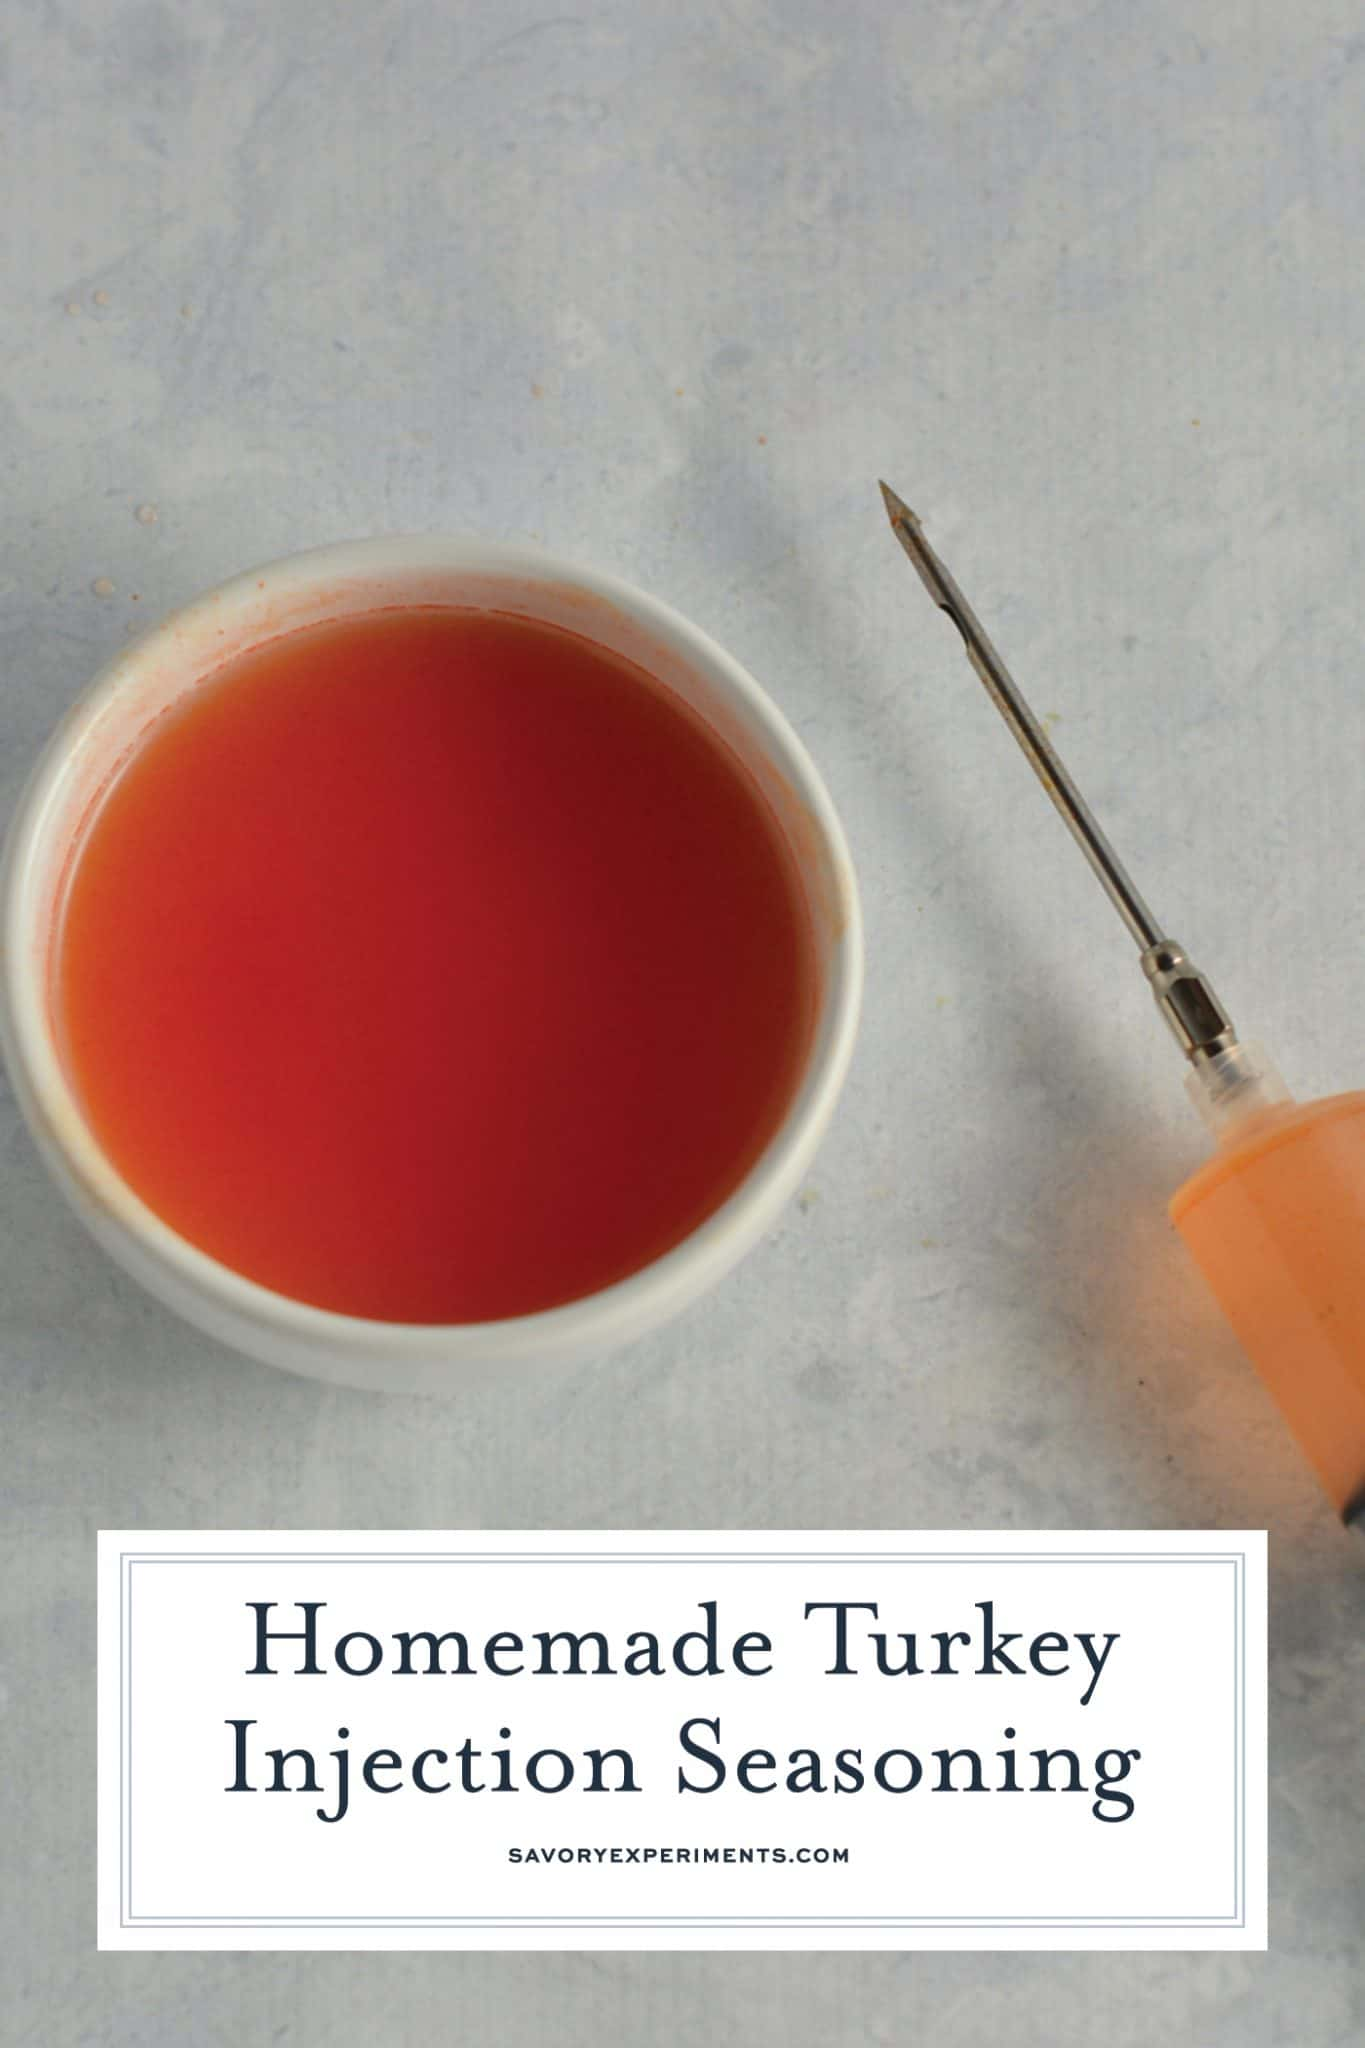 This Homemade Turkey Injection Seasoning is super easy, taking only 5 minutes for a flavorful and slightly sweet bird just like the Cajun turkey injector they sell at the store! #turkeyinjection #cajuninjector #turkeyrecipe www.savoryexperiments.com